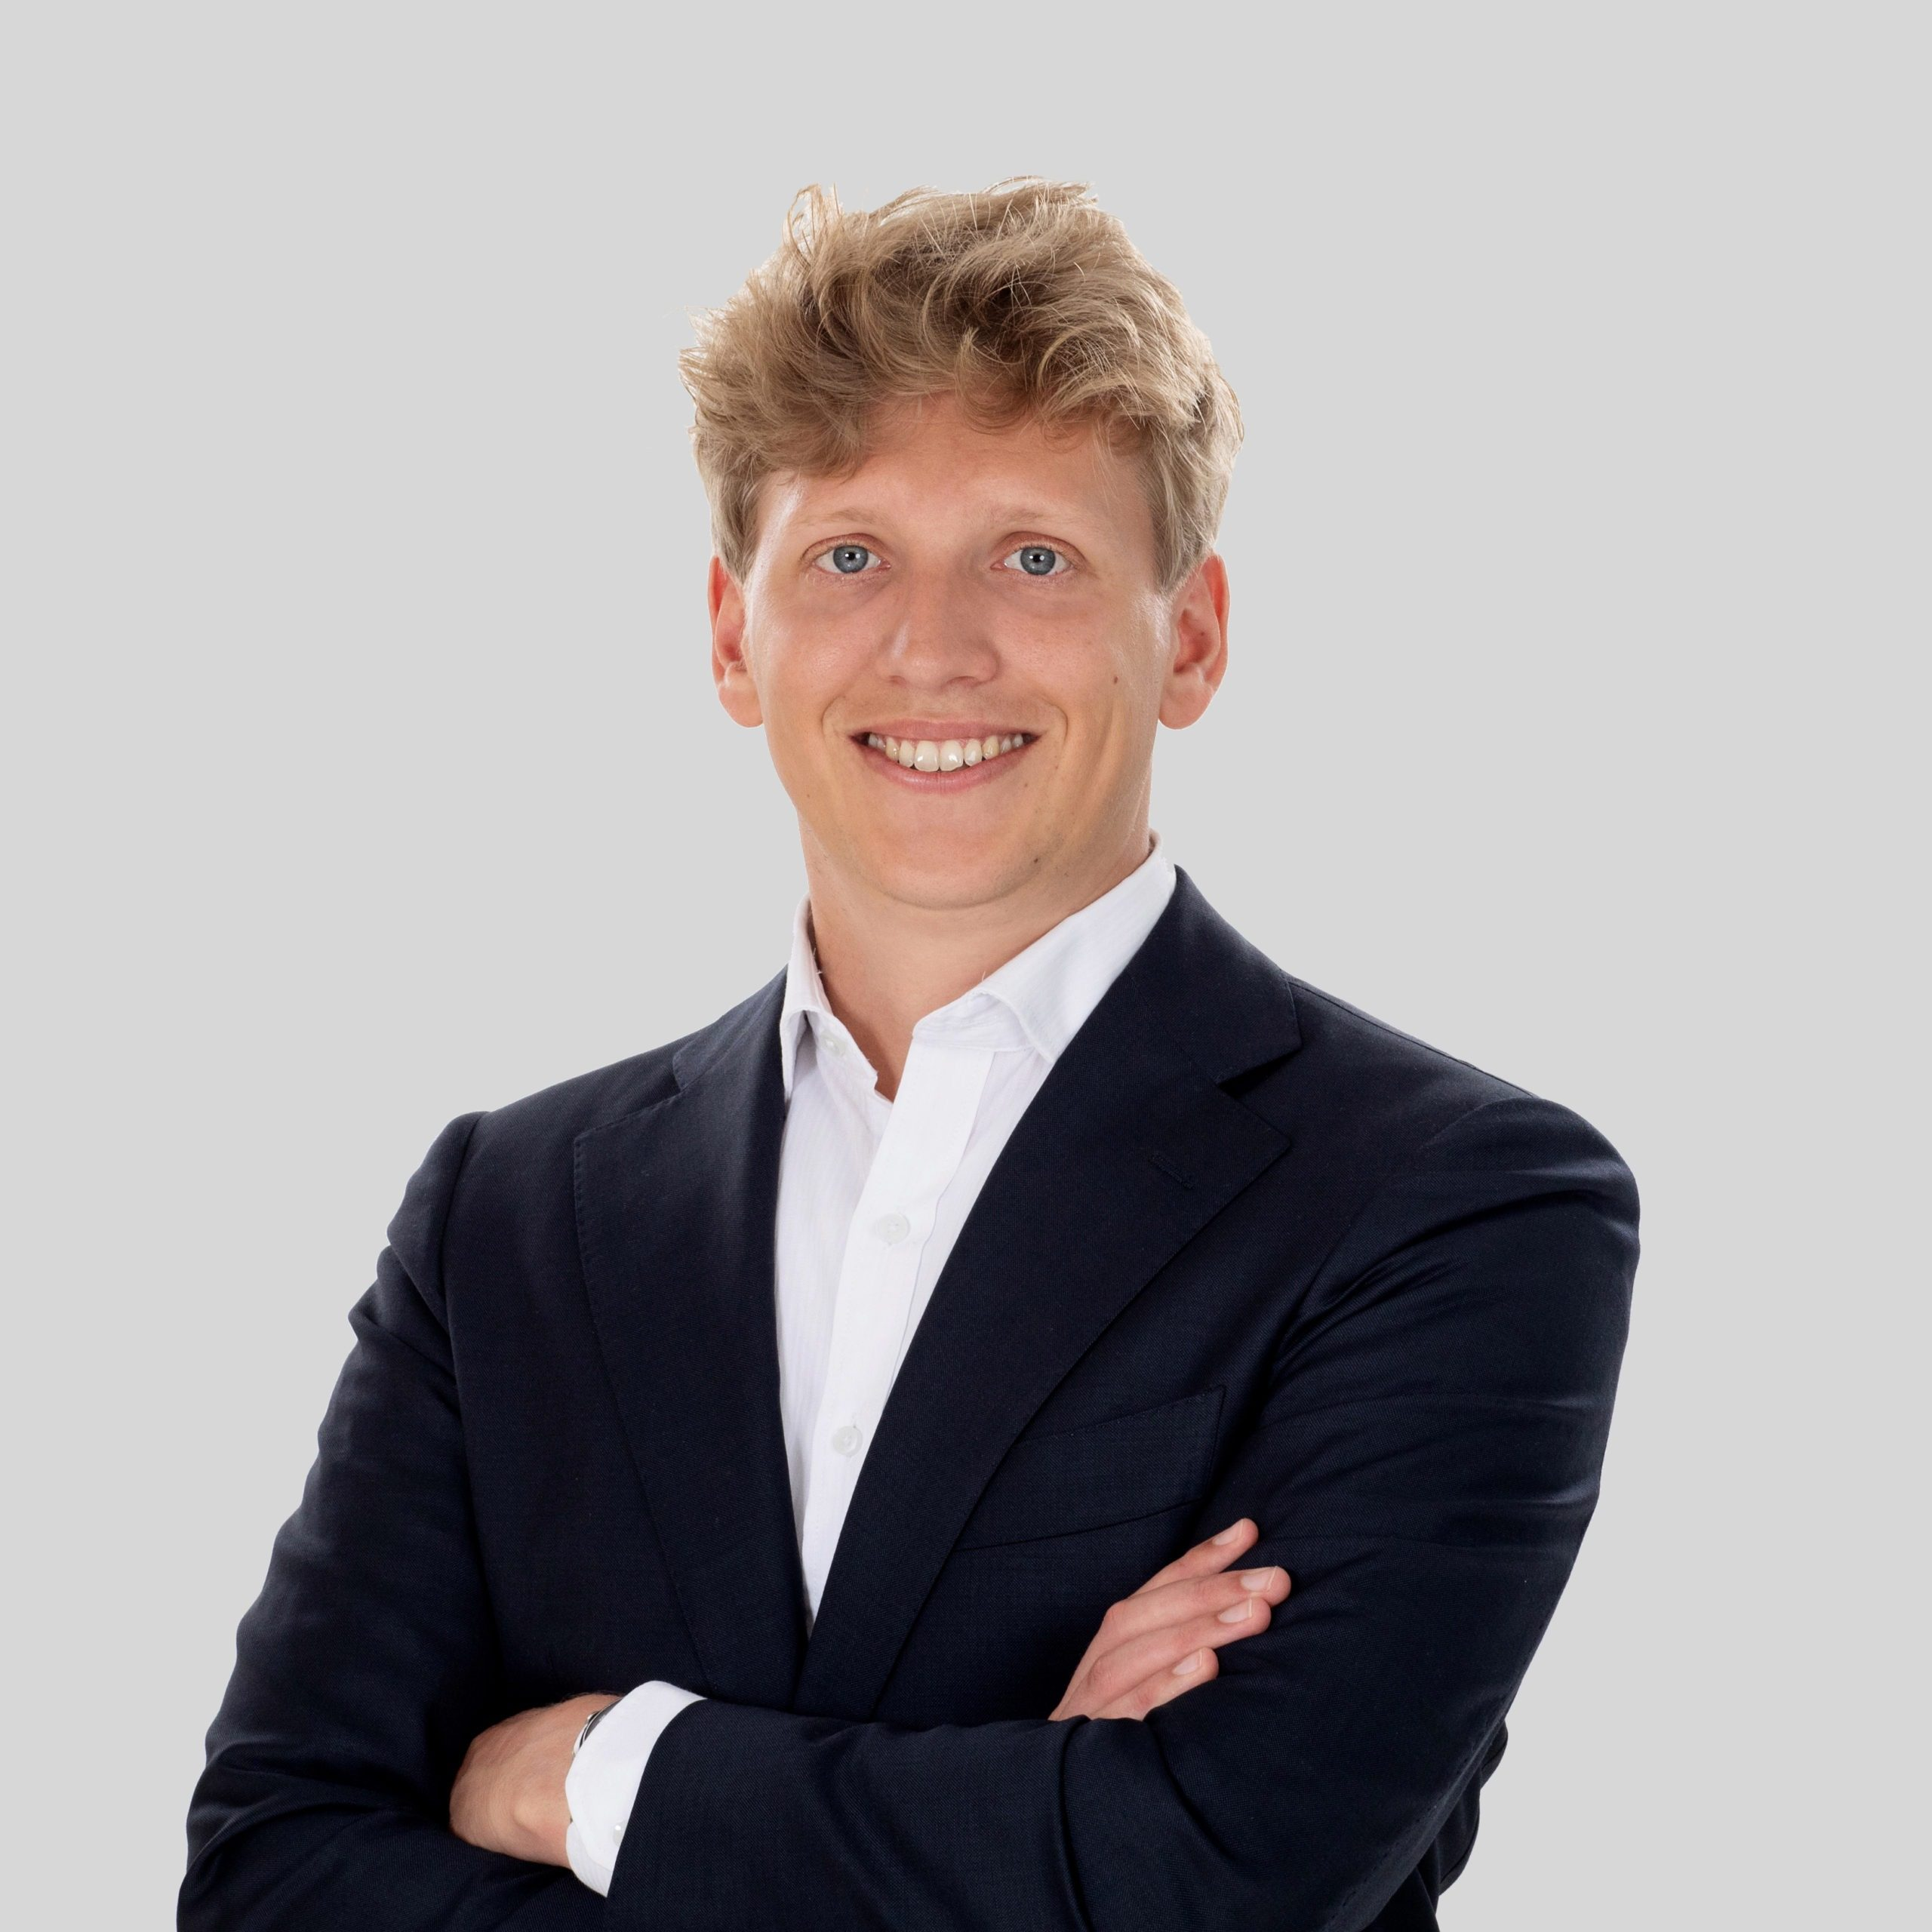 Mathieu-Blanke-consultant-been-management-consulting